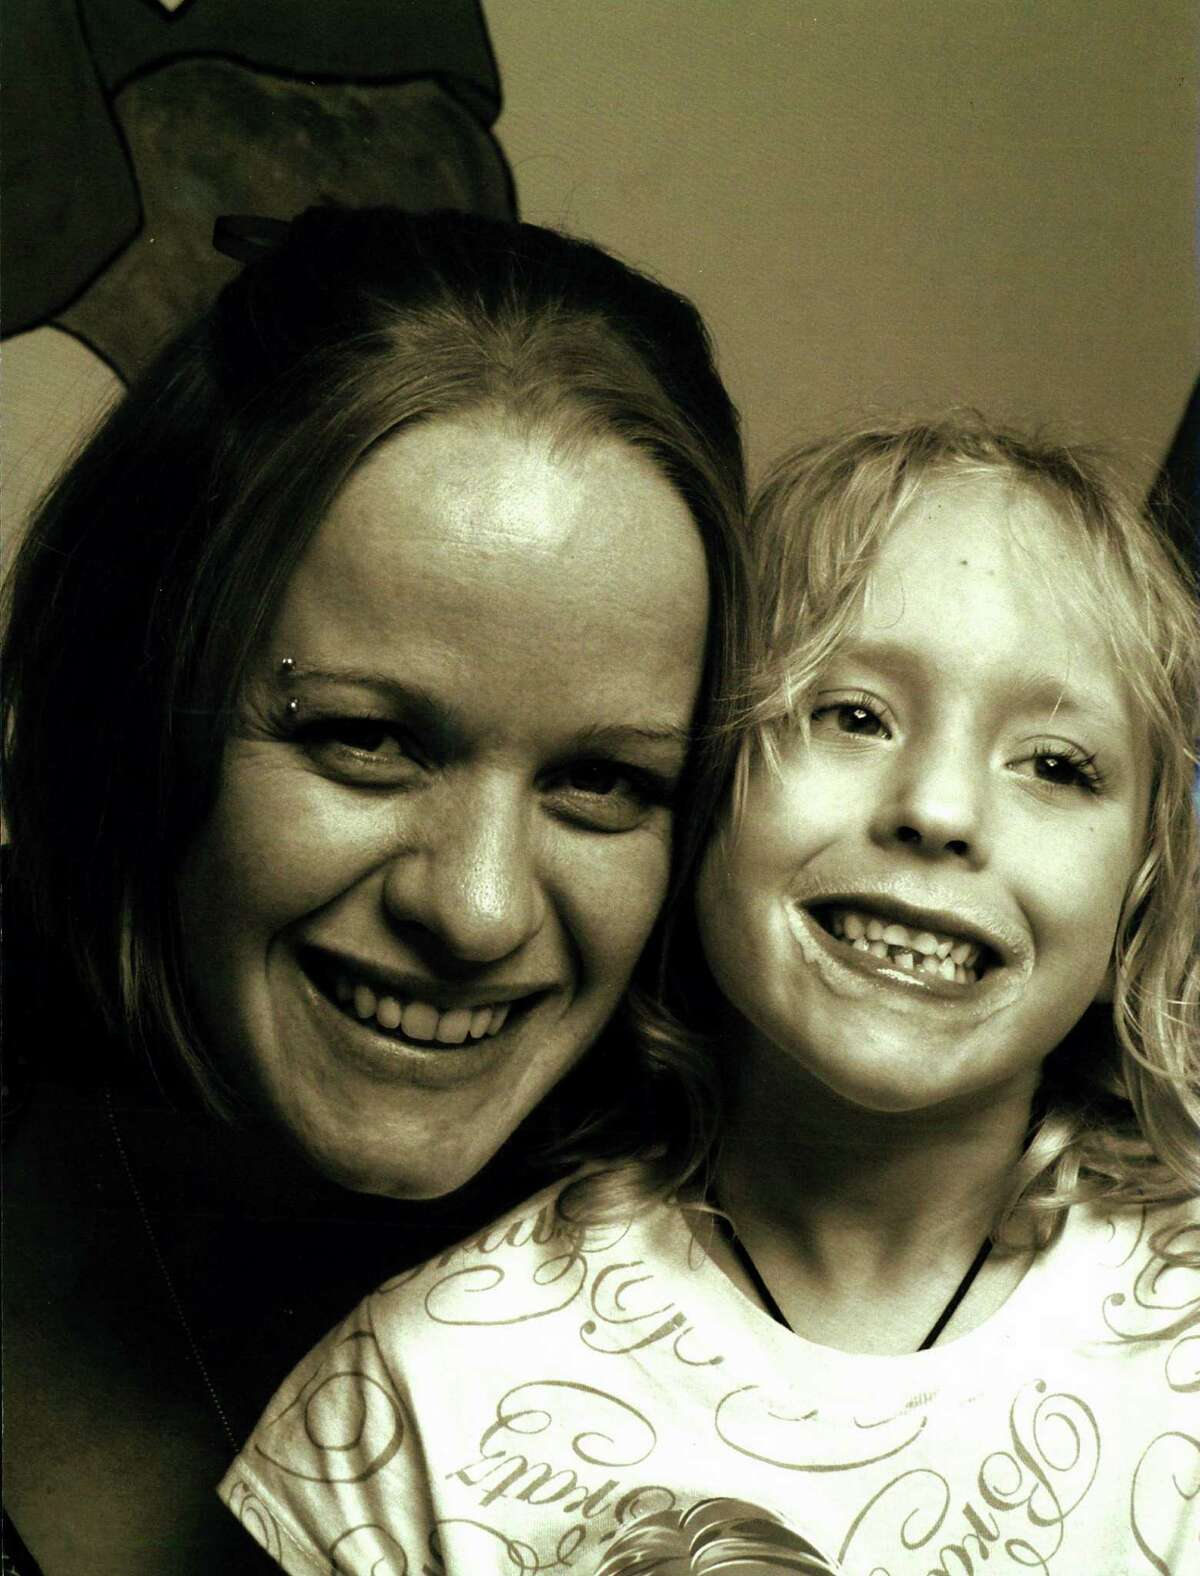 Jo-Anne Brasse (mother), now Jo-Anne Guerrero, and Sarah Brasse who died in February 2009 of untreated appendicitis at age 8.